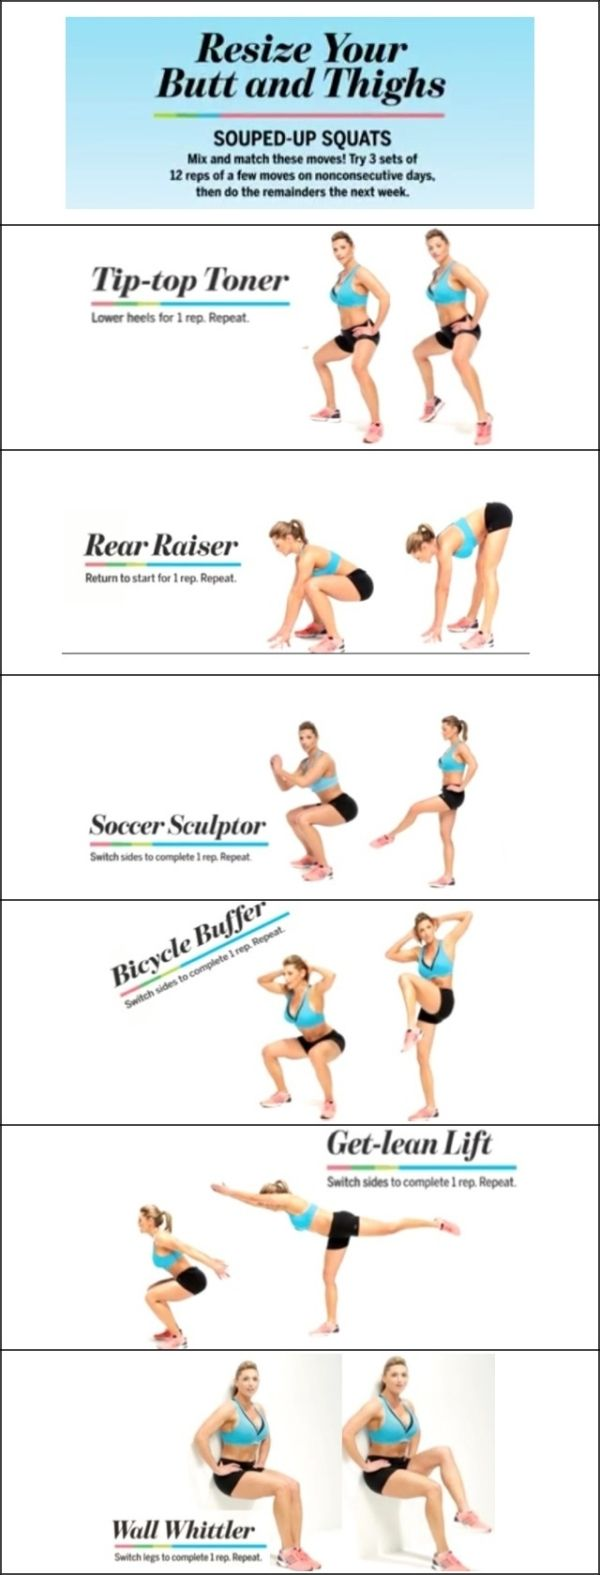 Resize your butt and thighs in 6 moves by patrica